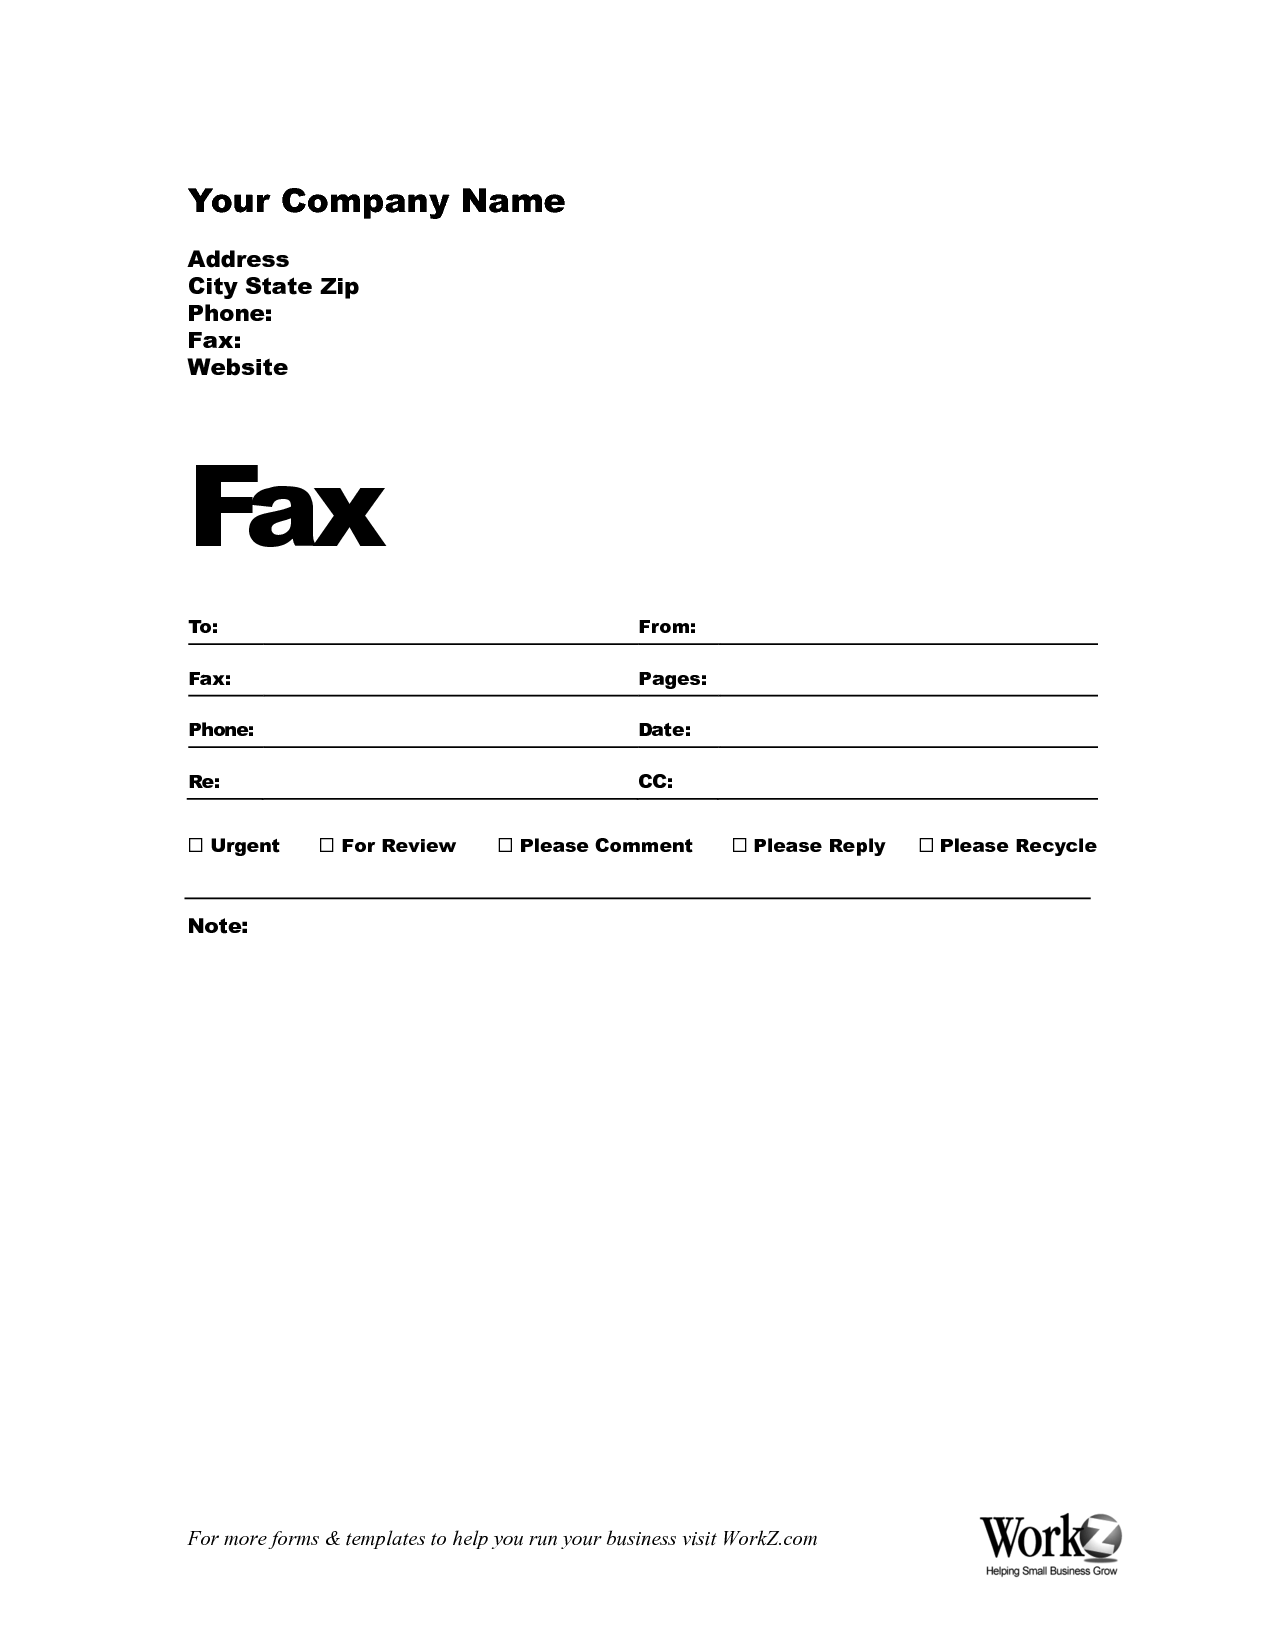 [ Fax Word Template Professional Cover Sheet Free Pdf Letter Resume ]    Best Free Home Design Idea U0026 Inspiration  Professional Letter Template Word 2010